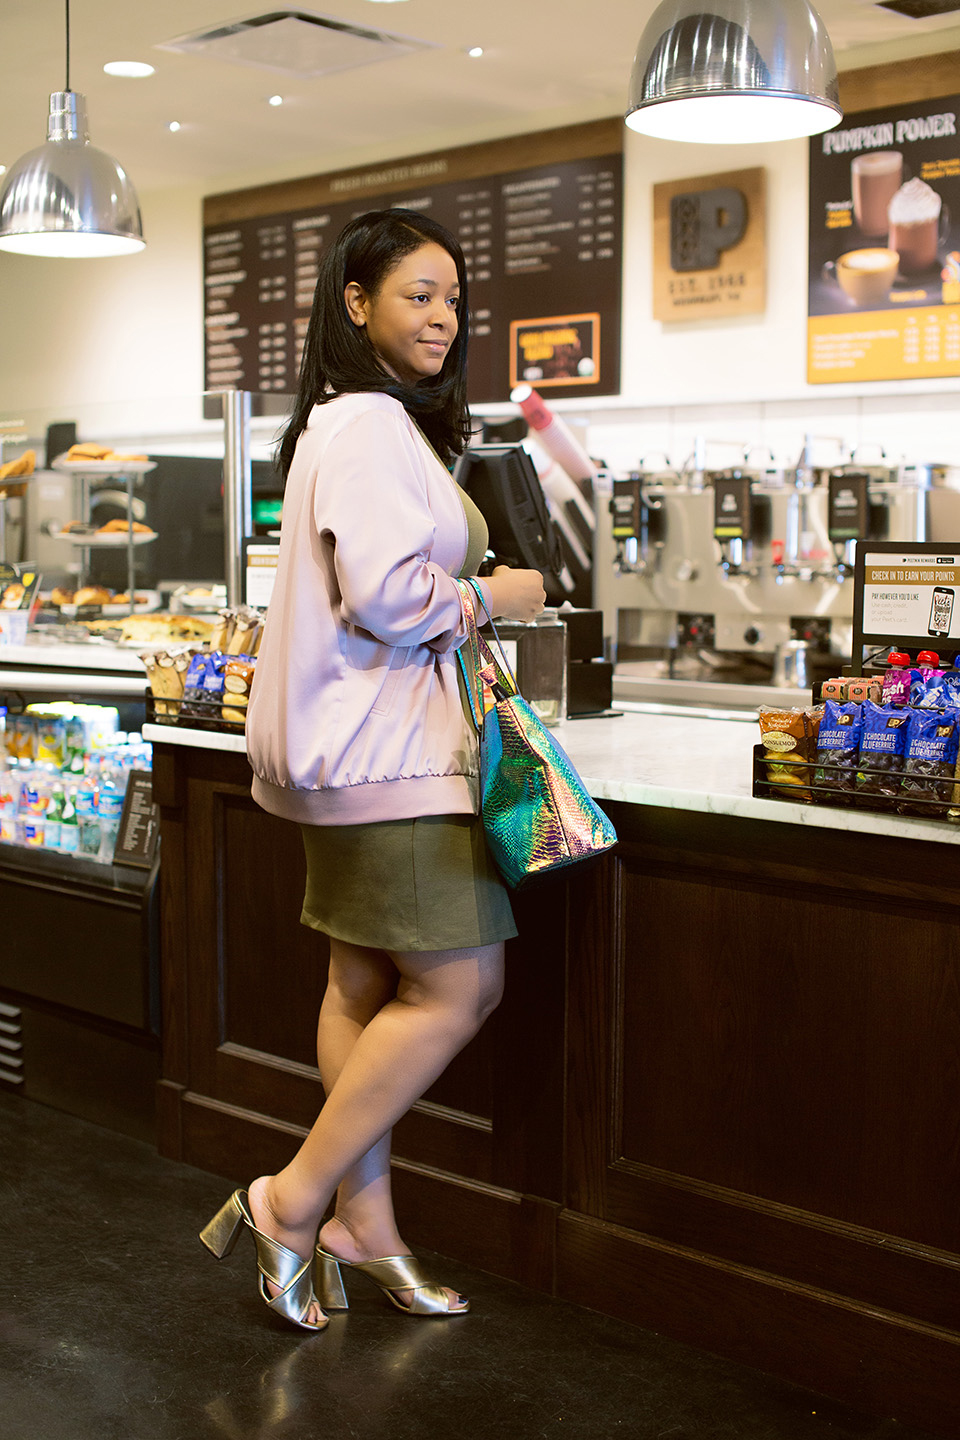 My Day to Night Style in D.C., With Topshop, Ally Aviator Sunglasses, Wrap Jersey Dress, pink Satin Bomber Jacket, Comet Large Tote Bag by Skinny Dip, gold RIOT Flared Mules, coffee shop